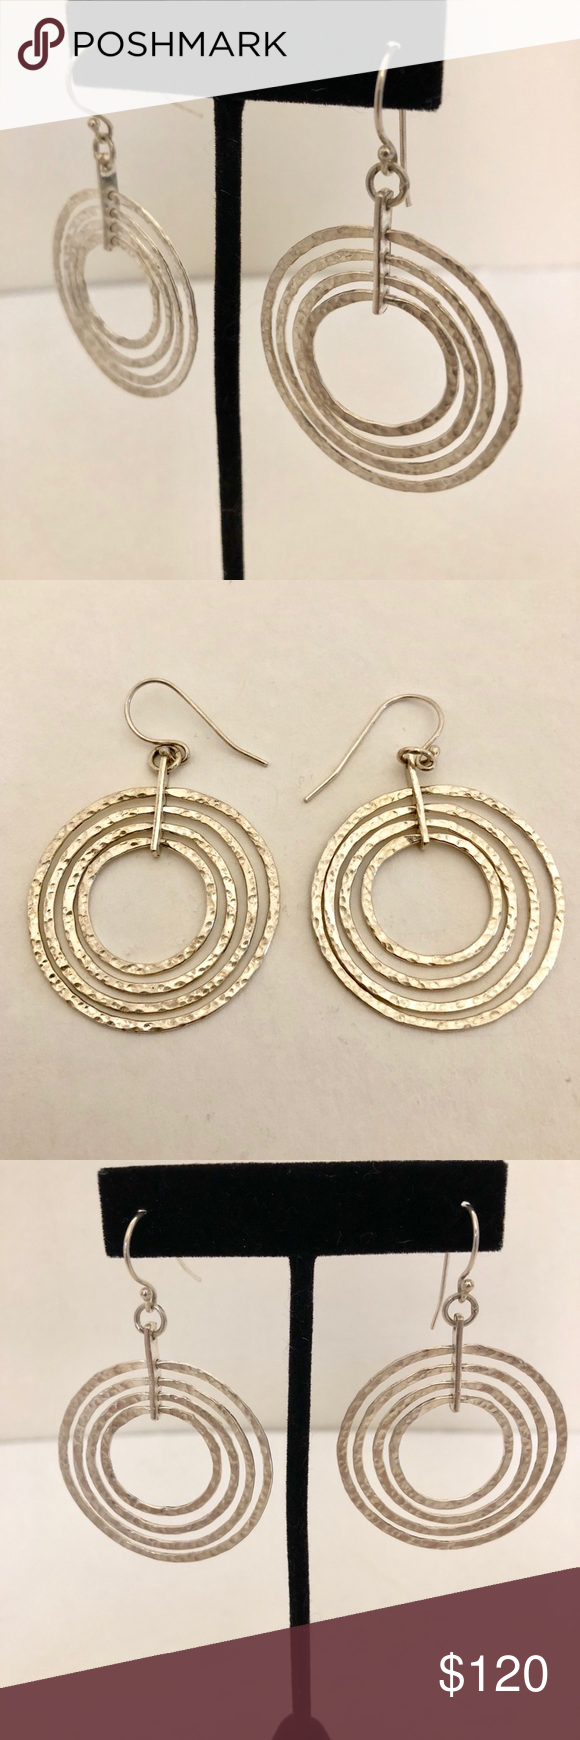 b6e248096 Sterling interlocking textured earrings, 13.5g Striking sterling silver  interlocking and articulated hoop earrings. In lovely, gently worn  condition.